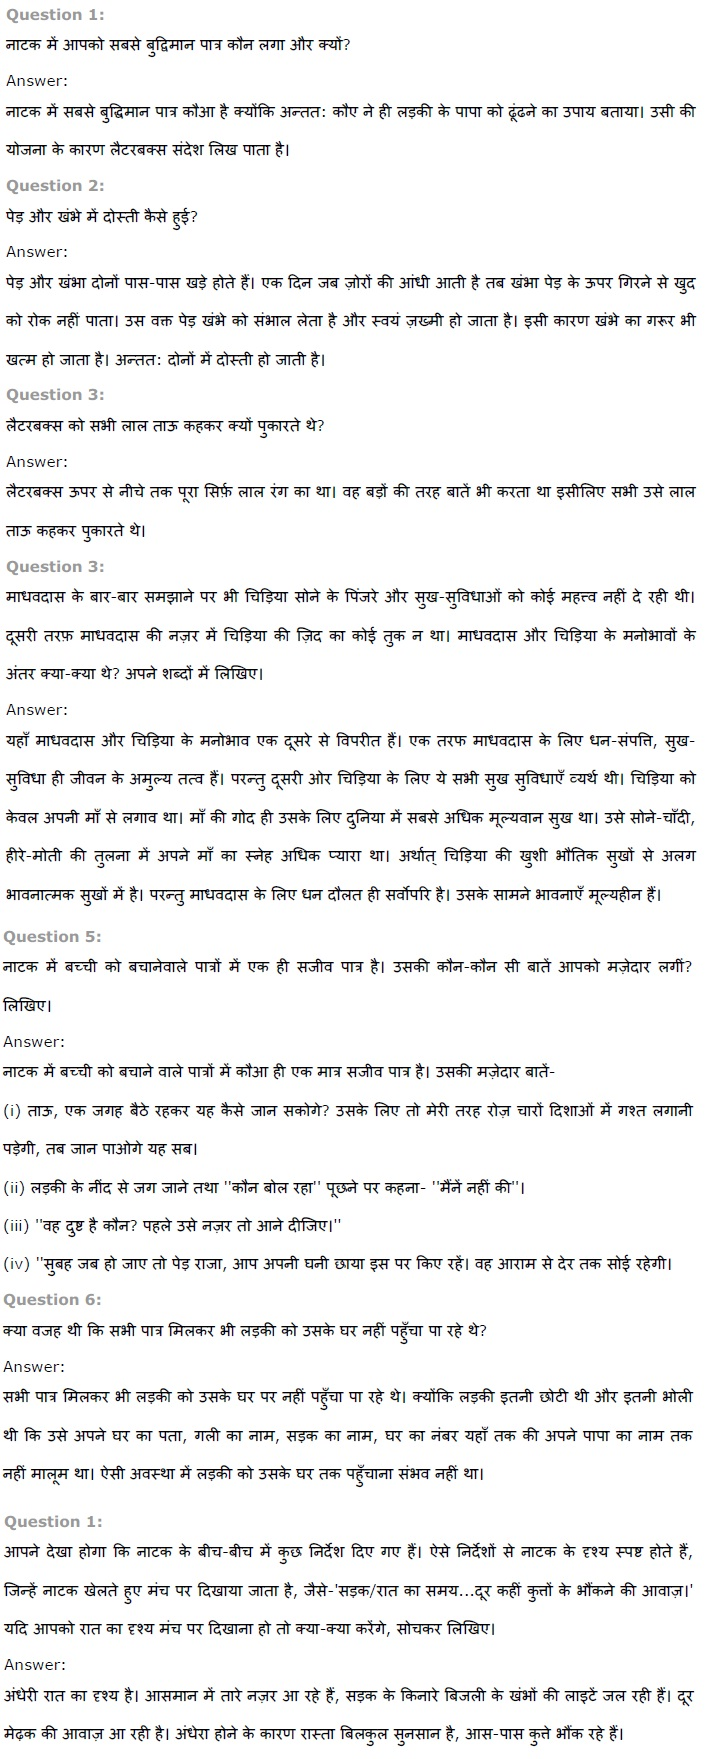 NCERT Solutions for Class 7th Hindi Chapter 7 पापा खो गए